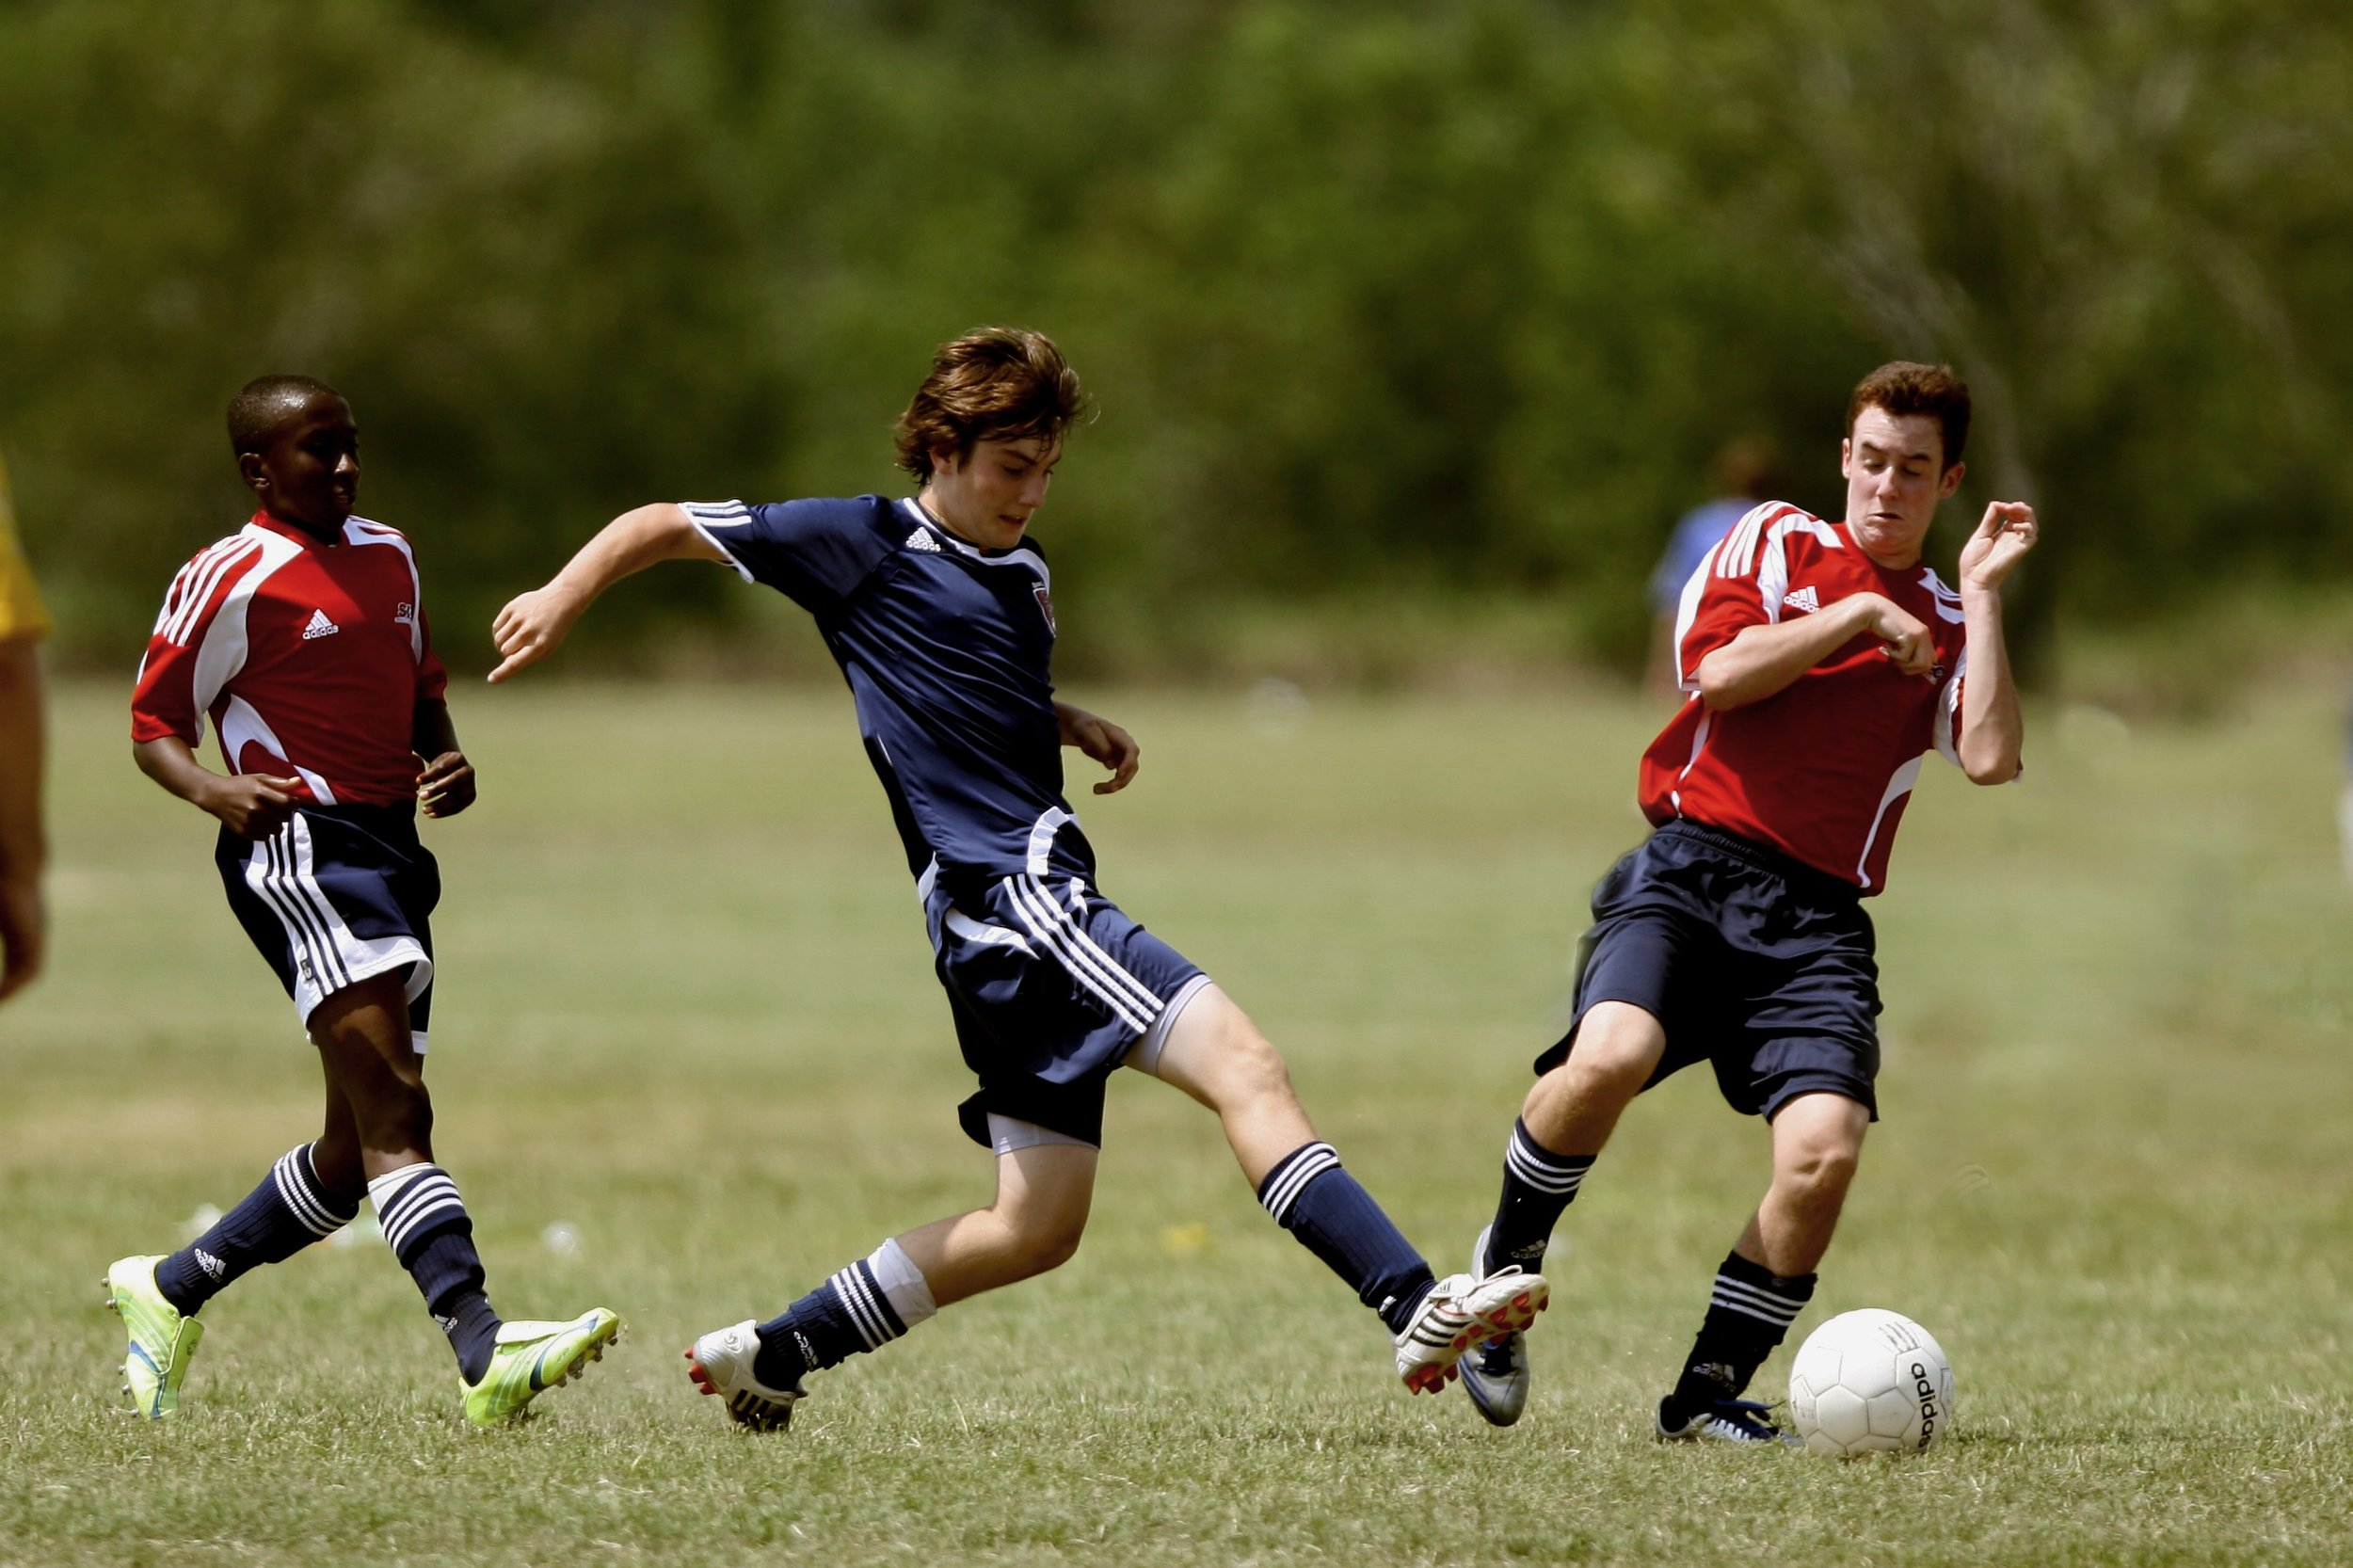 soccer-injury-reduction-programs